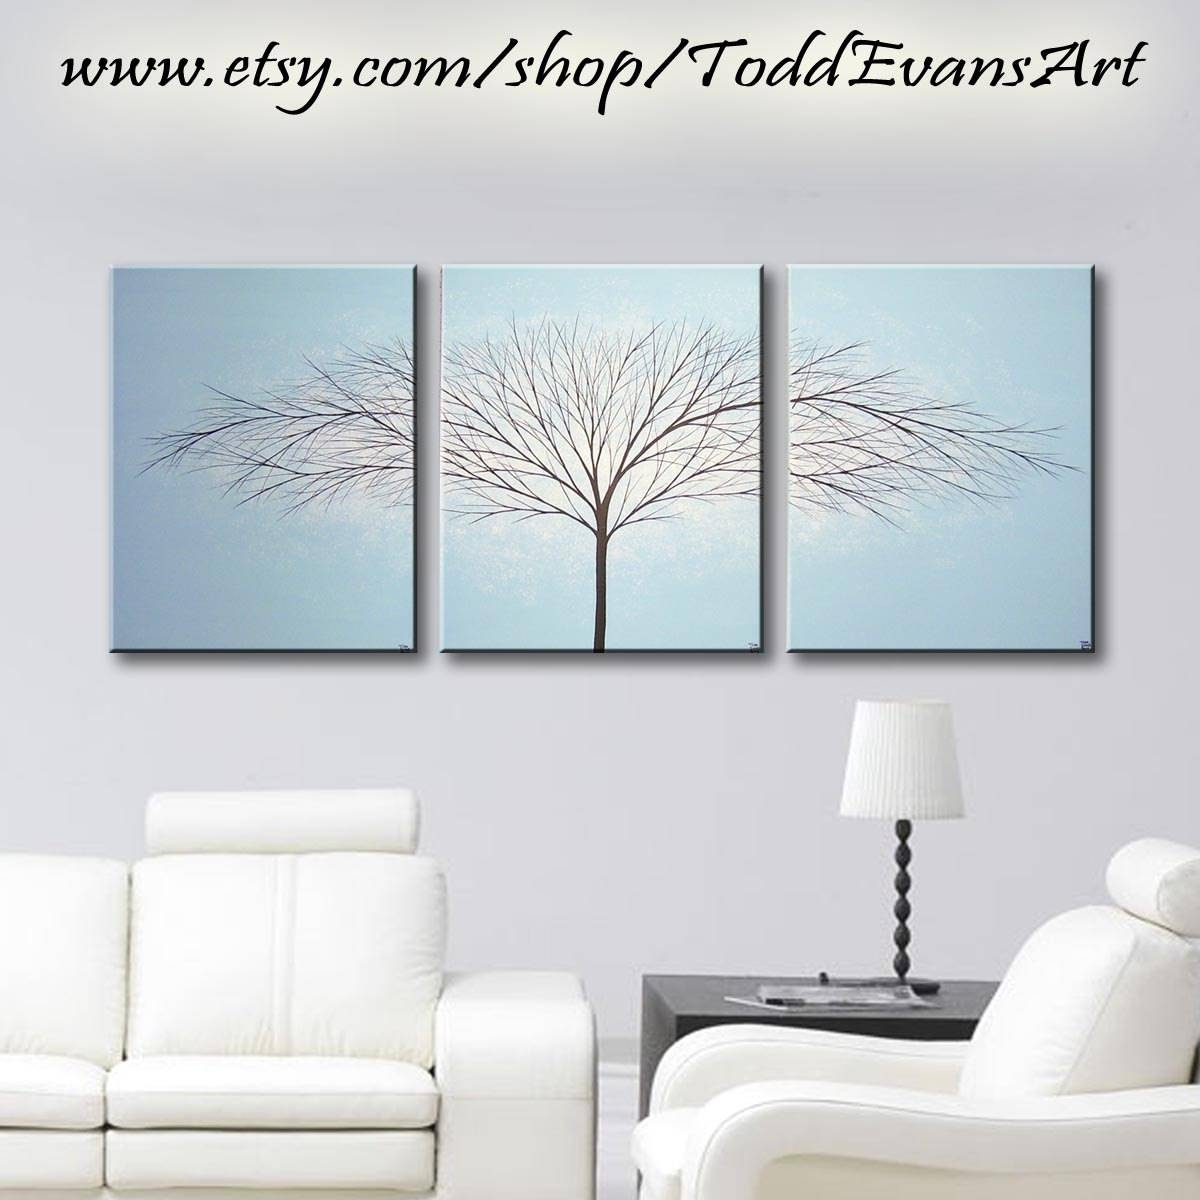 Tree Painting 3 Piece Wall Art Large Canvas Art Painting Throughout Most Recently Released 3 Piece Wall Art Sets (View 15 of 25)